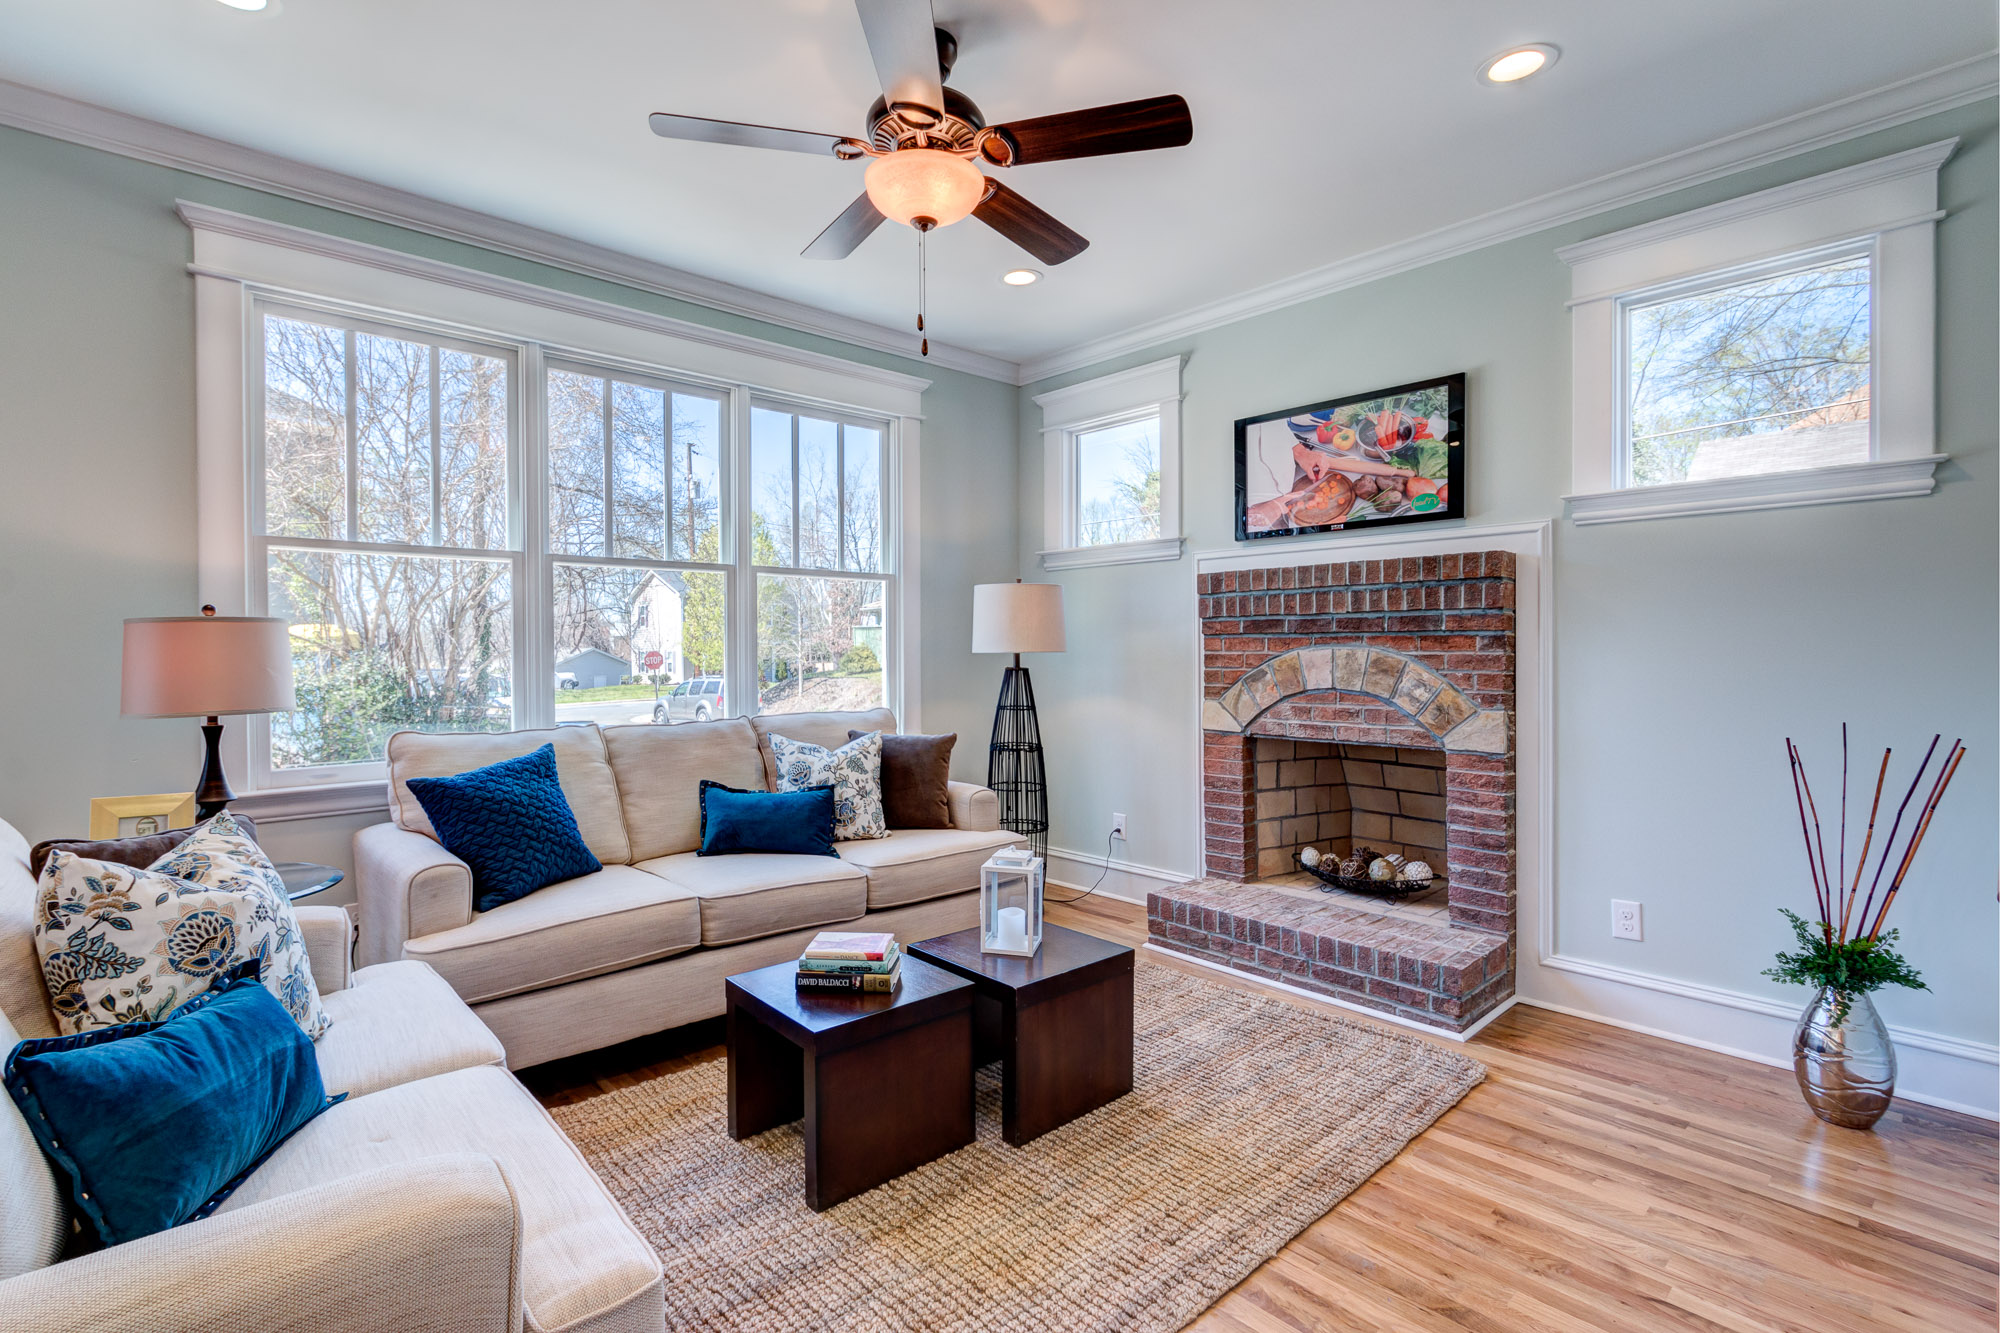 Real Estate Photography: Brick Fireplace Living Room in Durham, NC new construction